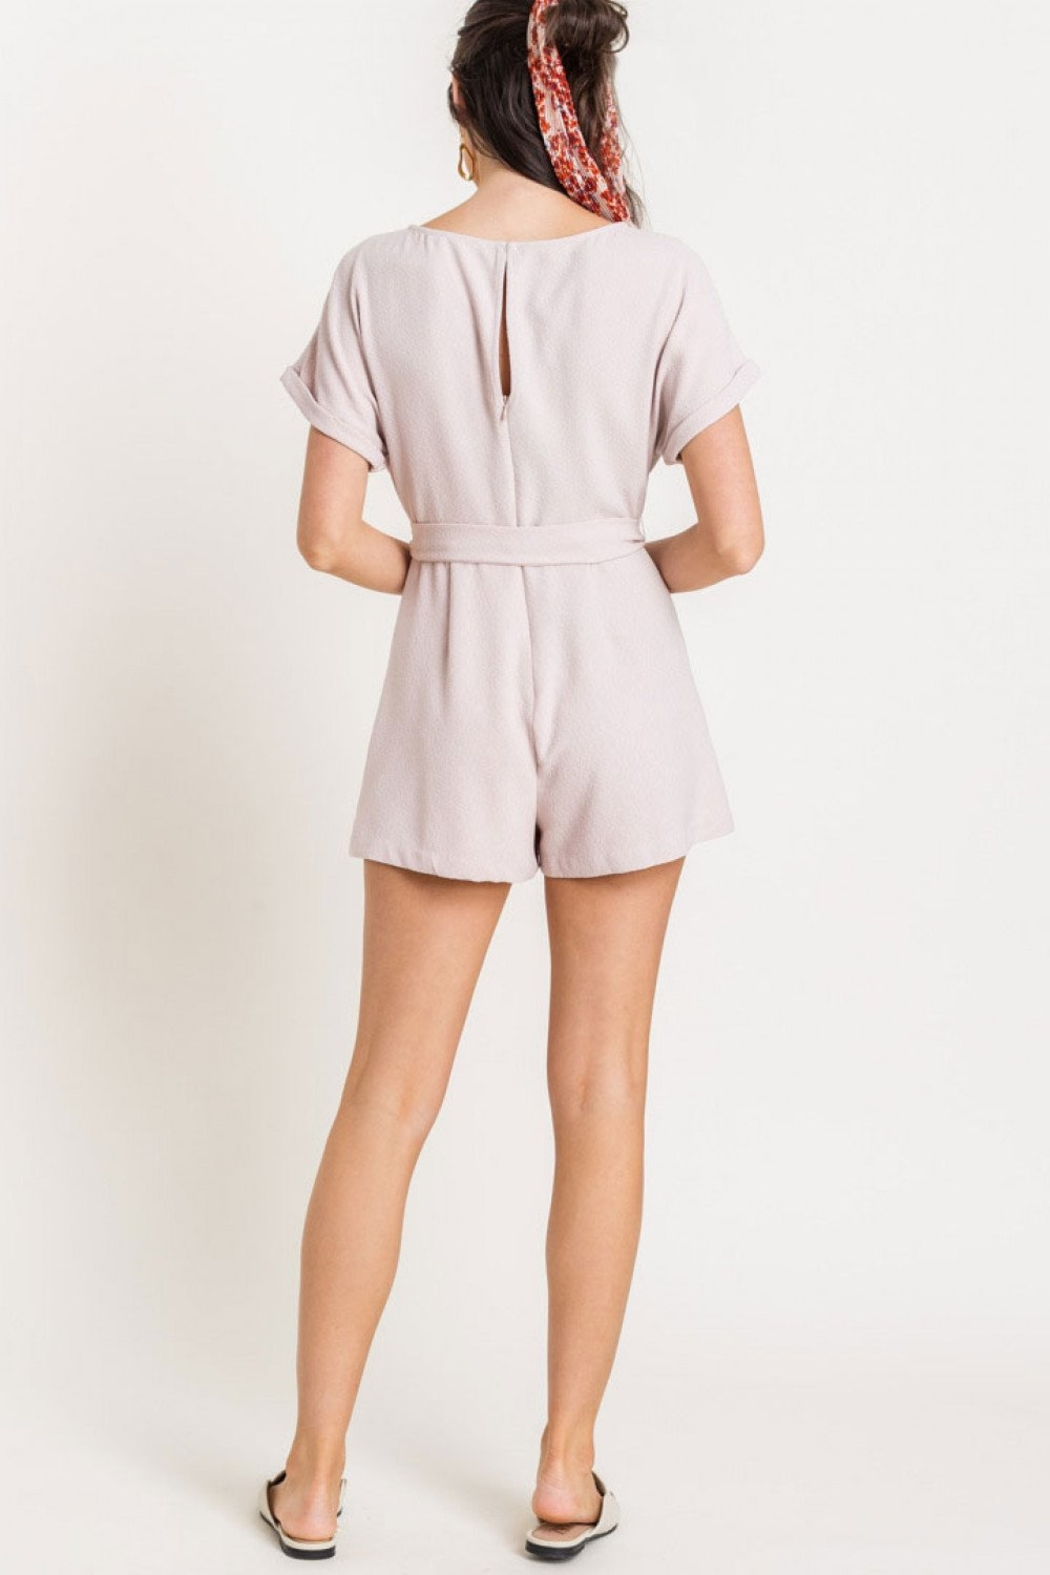 Lush Clothing  Textured romper - Front Full Image